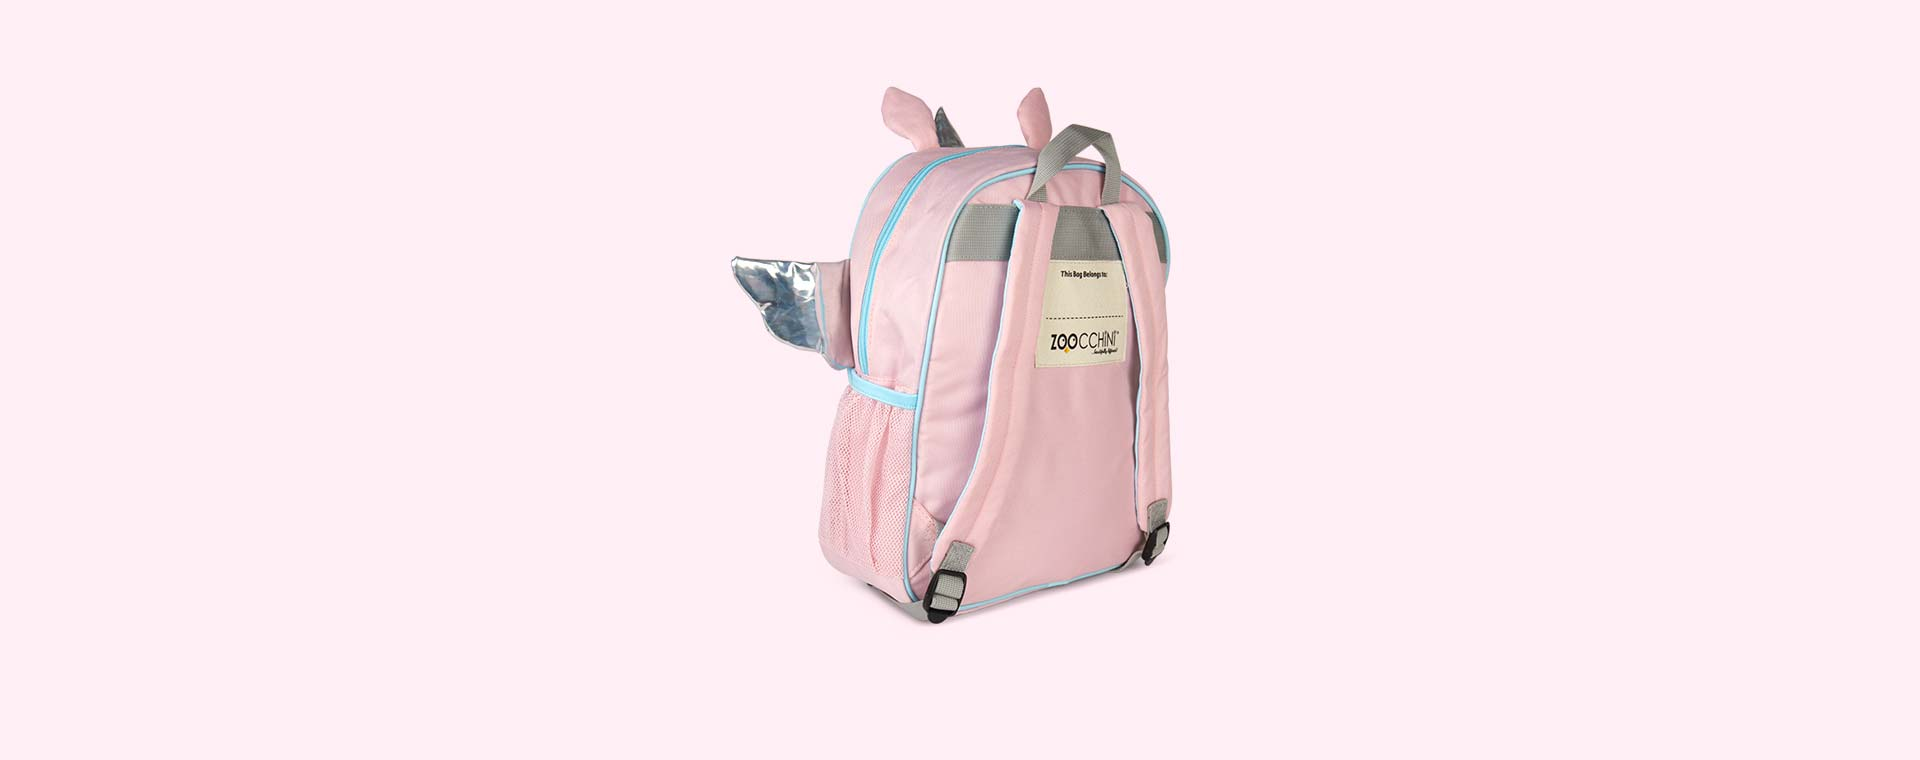 Unicorn Zoocchini Kids Backpack Pals